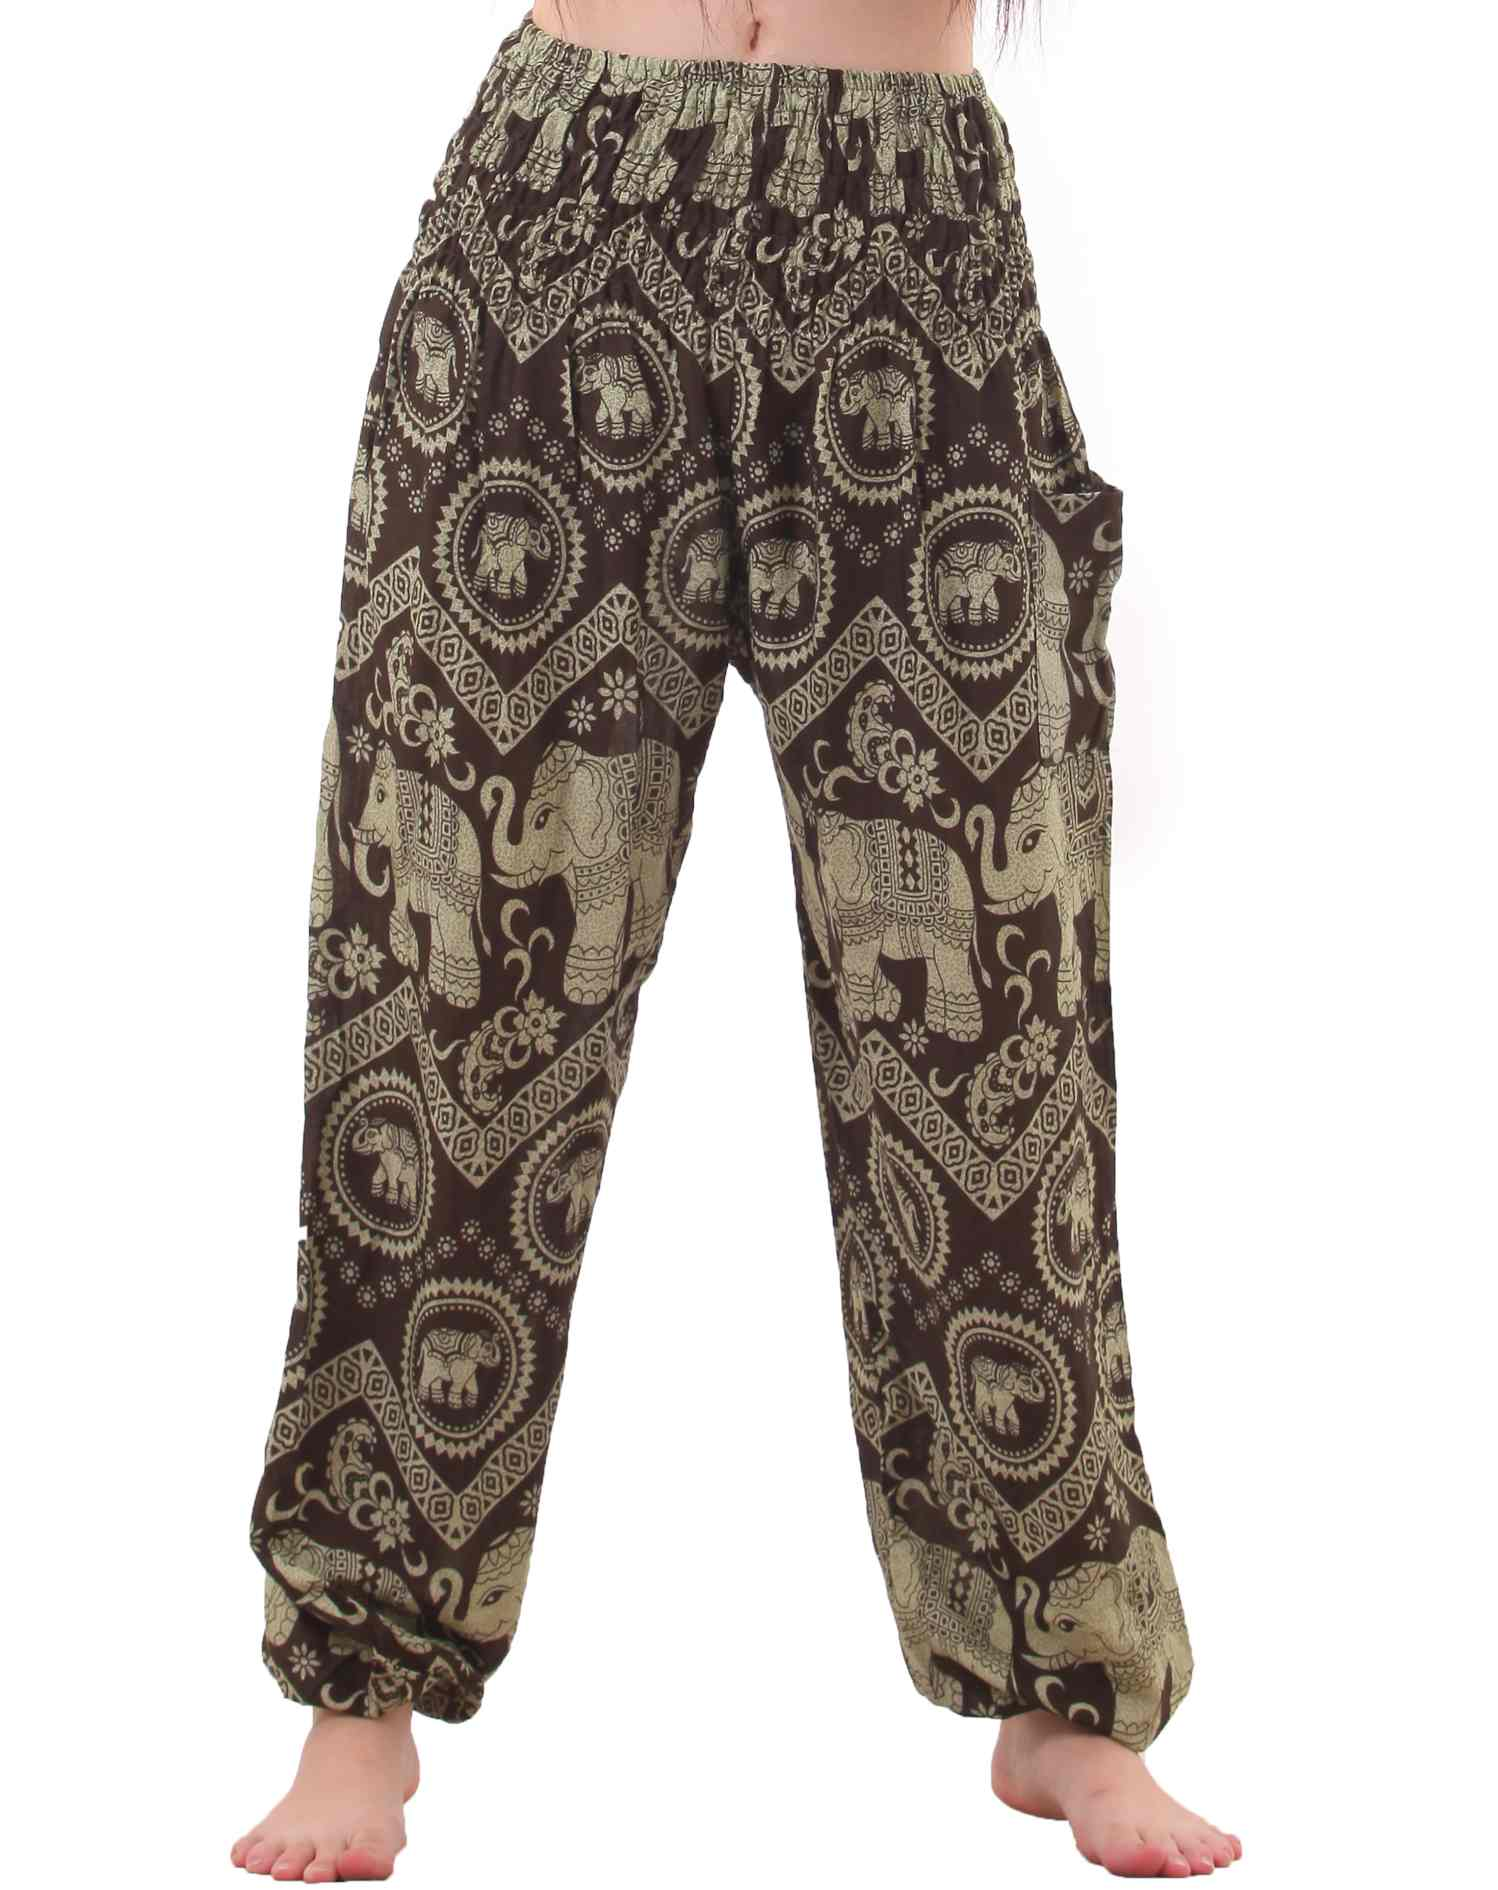 Innovative For Two Years, The Women Refused To Make Pants Finally Melissa Took A Skirt Pattern, And Showed Them How To Sew Up The Middle The Result Was A Pair Of Elephant Pants, Still A Big Seller Melissa, Who Worked In The Music Business In